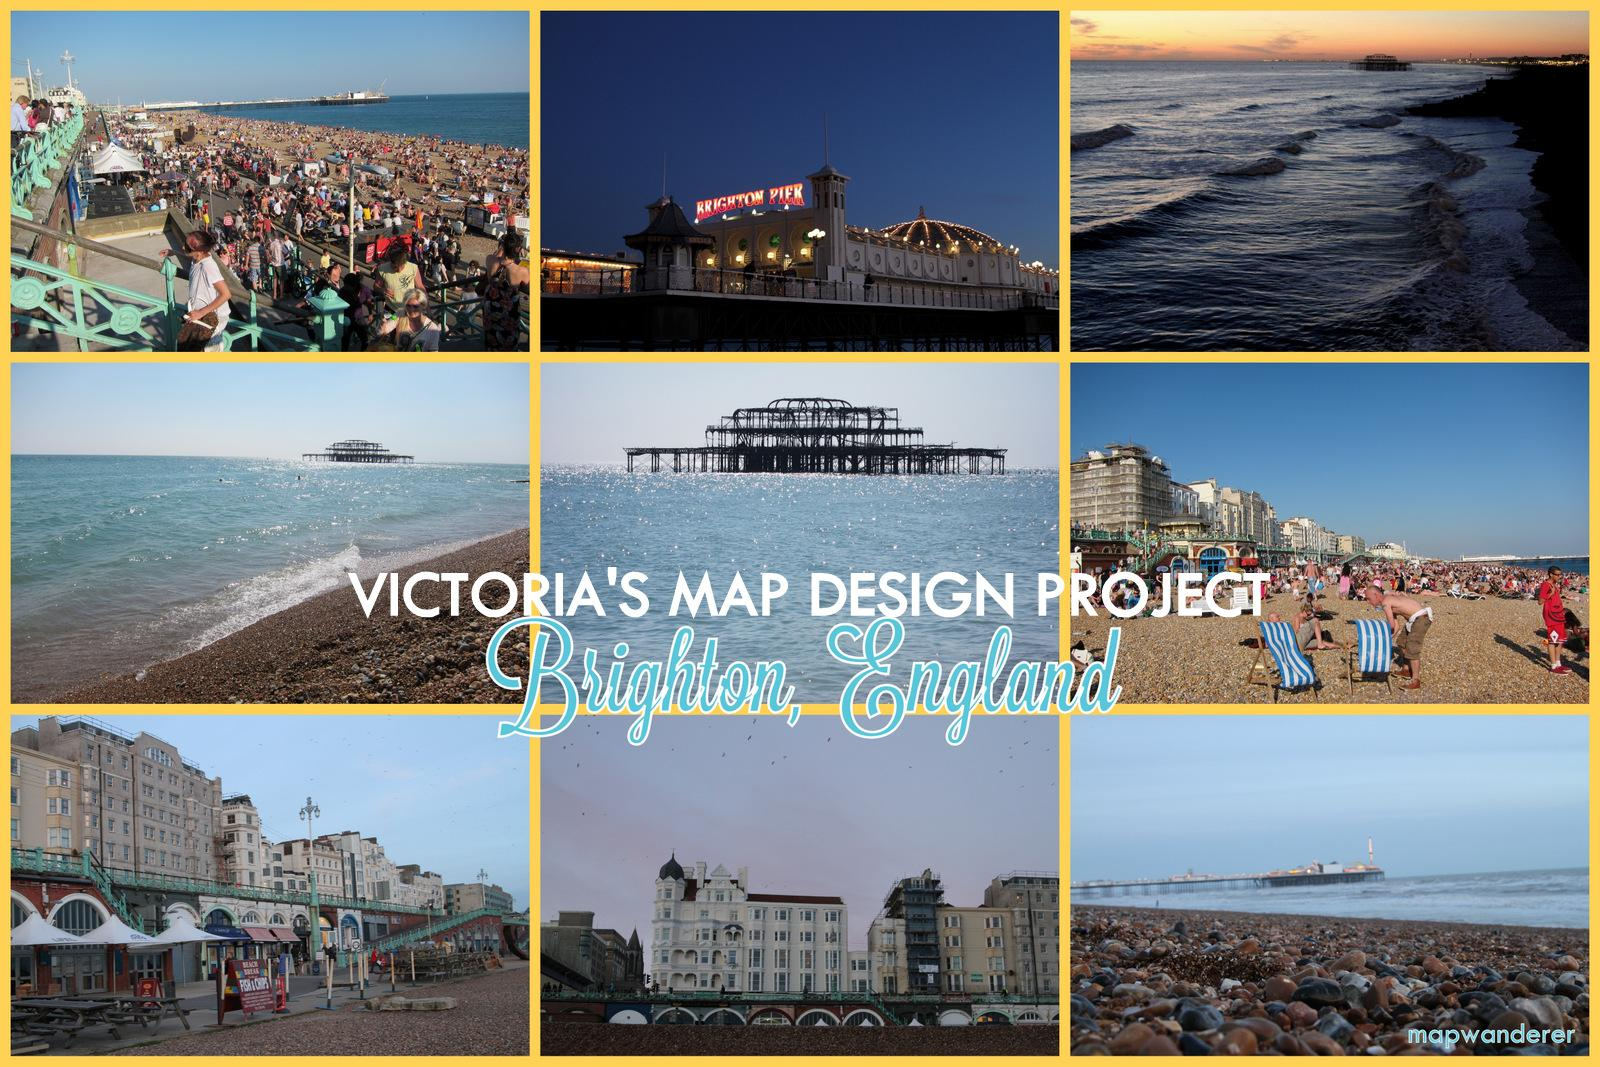 Walks through the seaside town of Brighton, England! - image 1 - student project